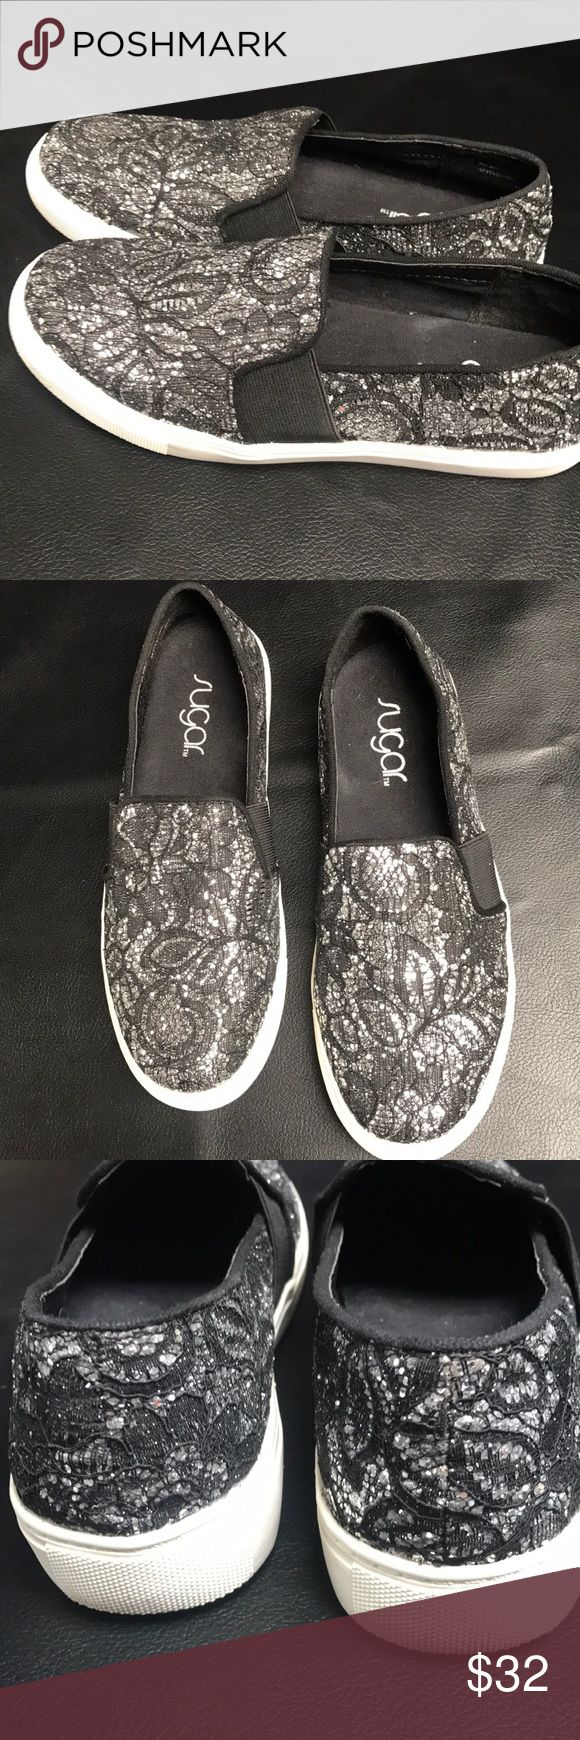 Sugar Izette Slip On Loafers-Price Dropped! Sugar Izette Slip On Loafers Black and Silver Metallic Lace Design  Excellent Condition!!  SIZE: 6 sugar Shoes Flats & Loafers